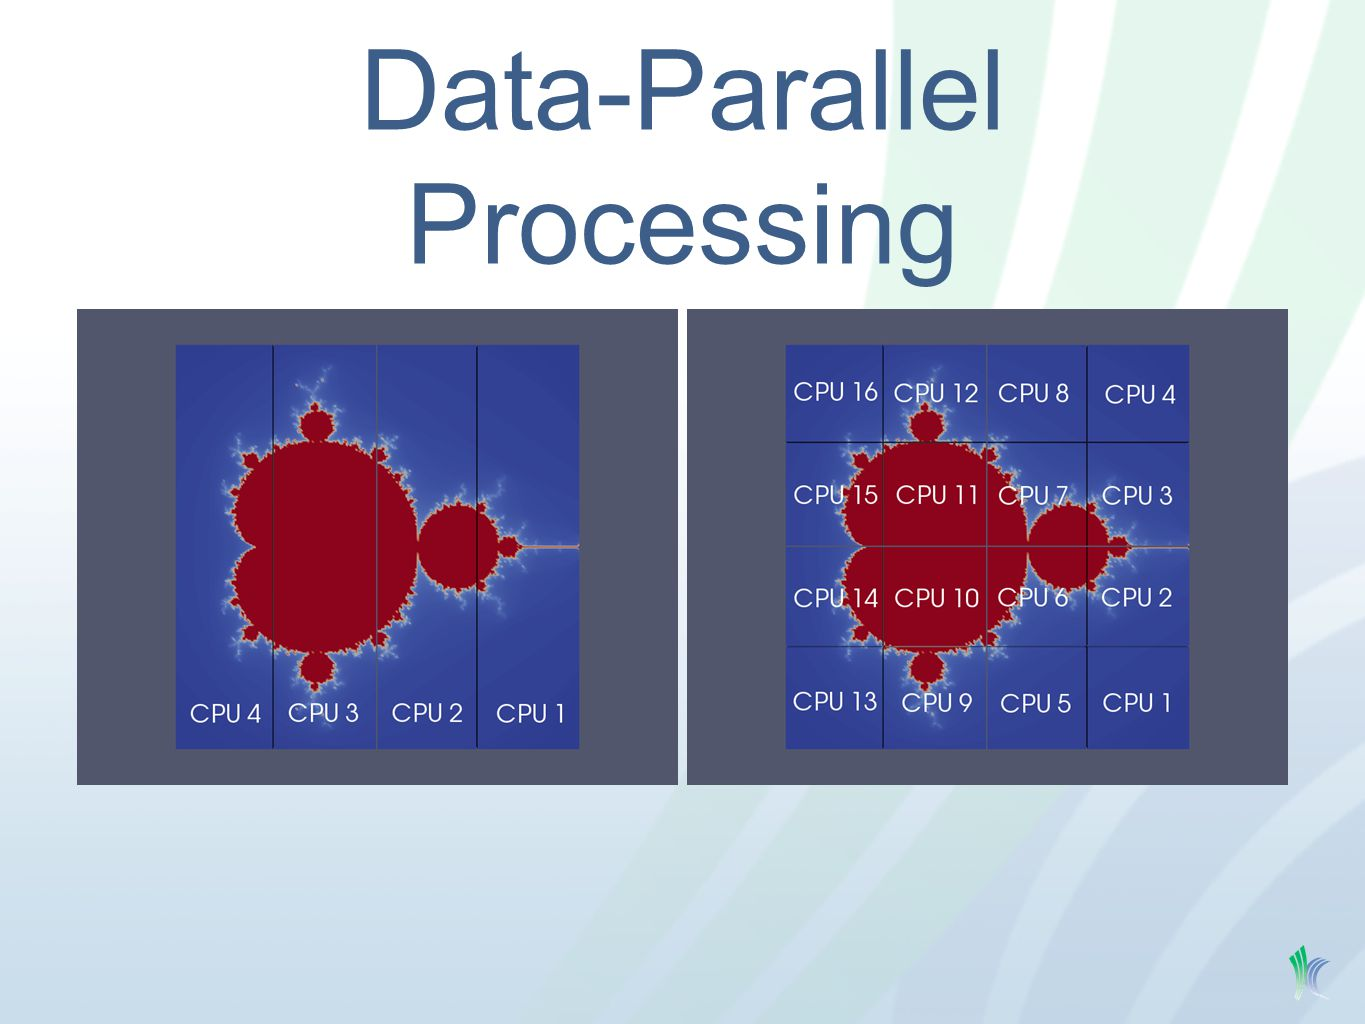 Data-Parallel Processing